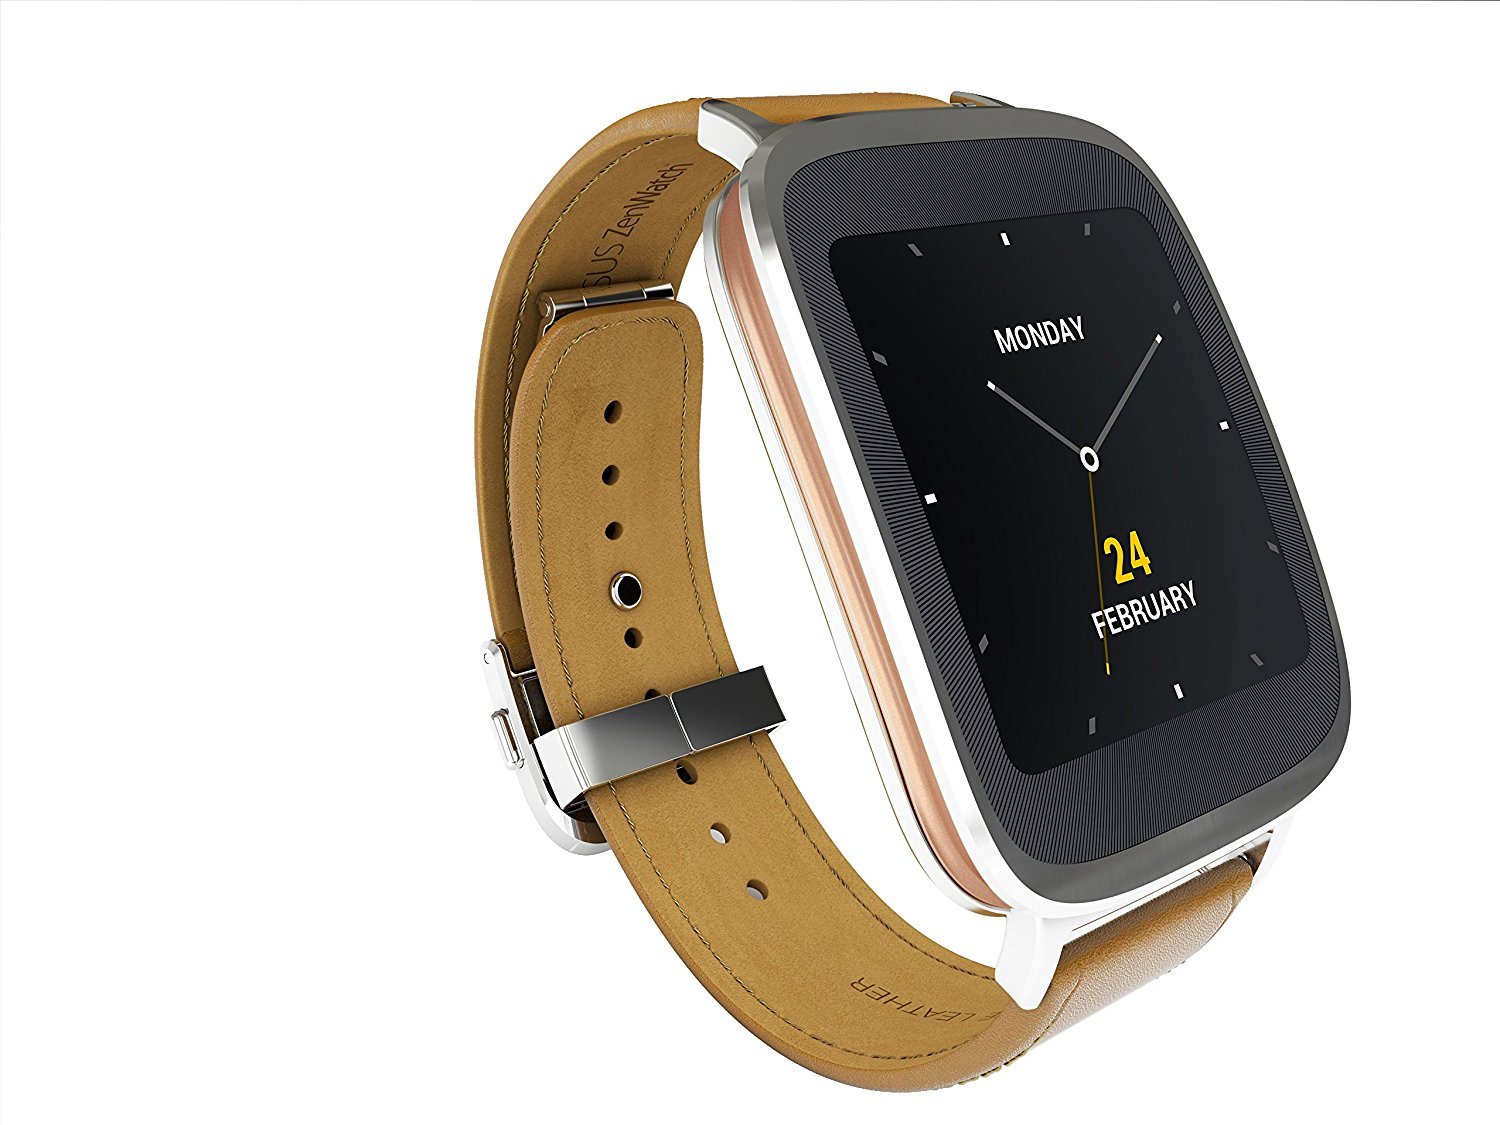 Top 5 Smartwatches From Apple,Samsung,LG,Motorola,Asus To Buy In 2017